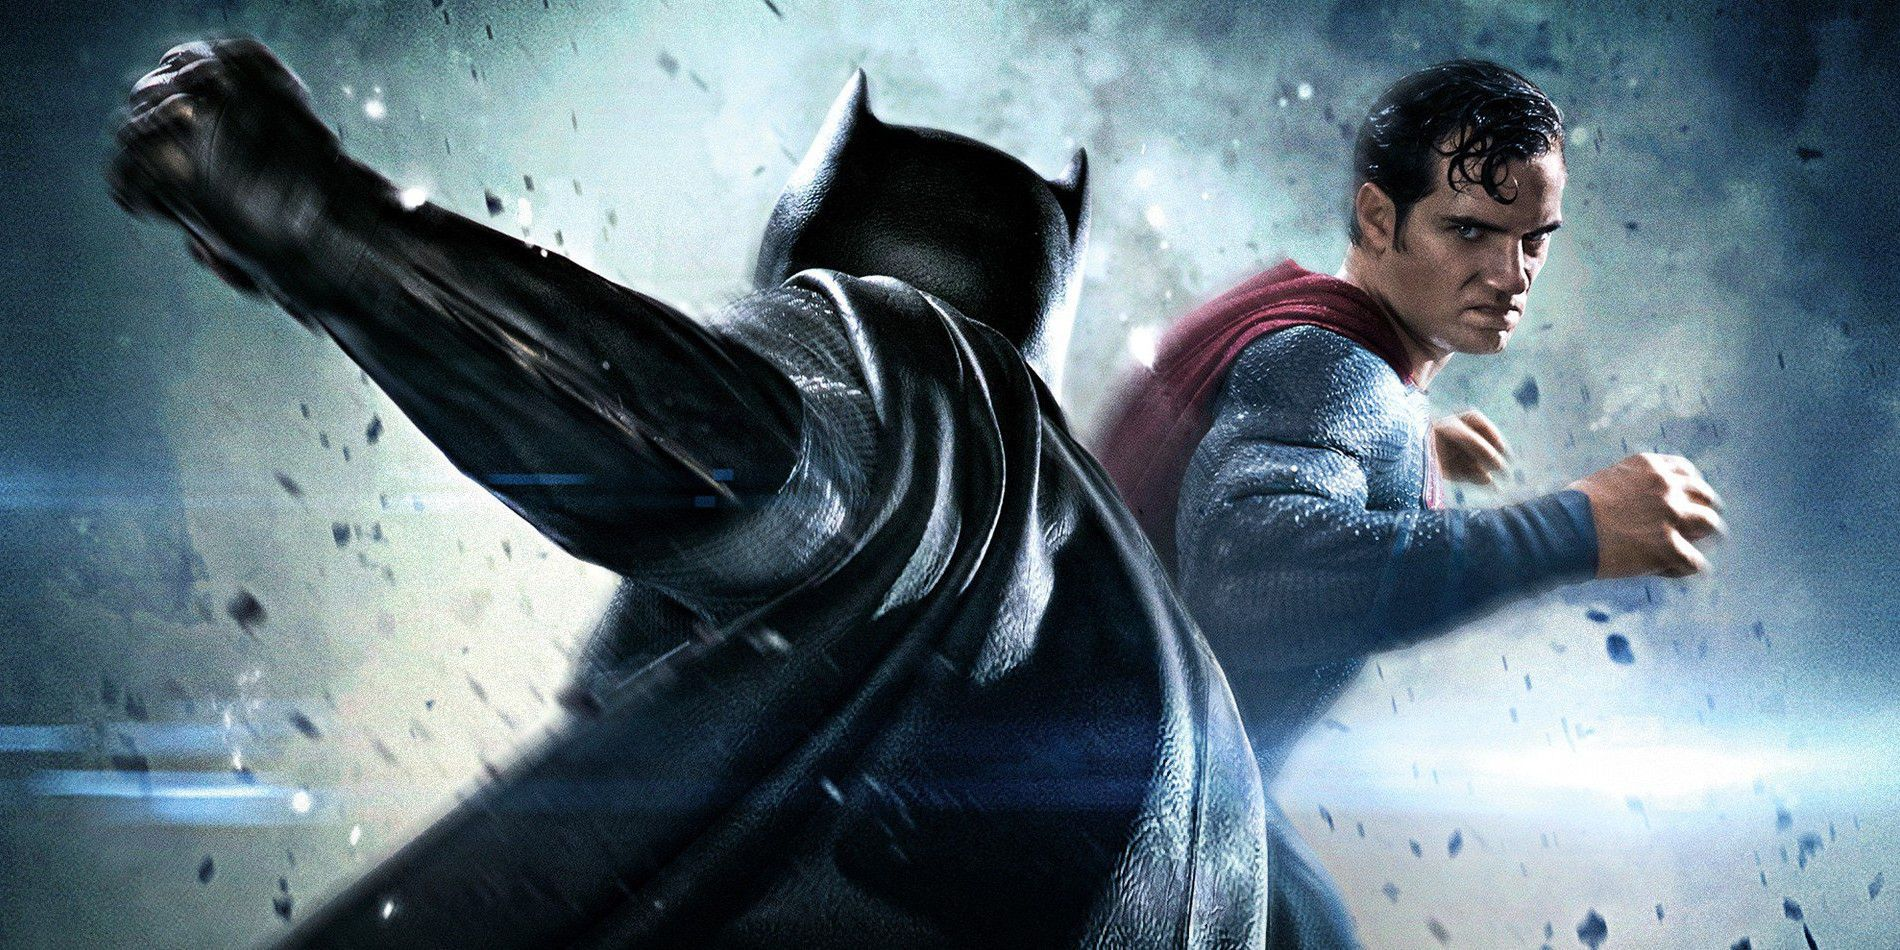 15 justice league members that could beat superman in a fight